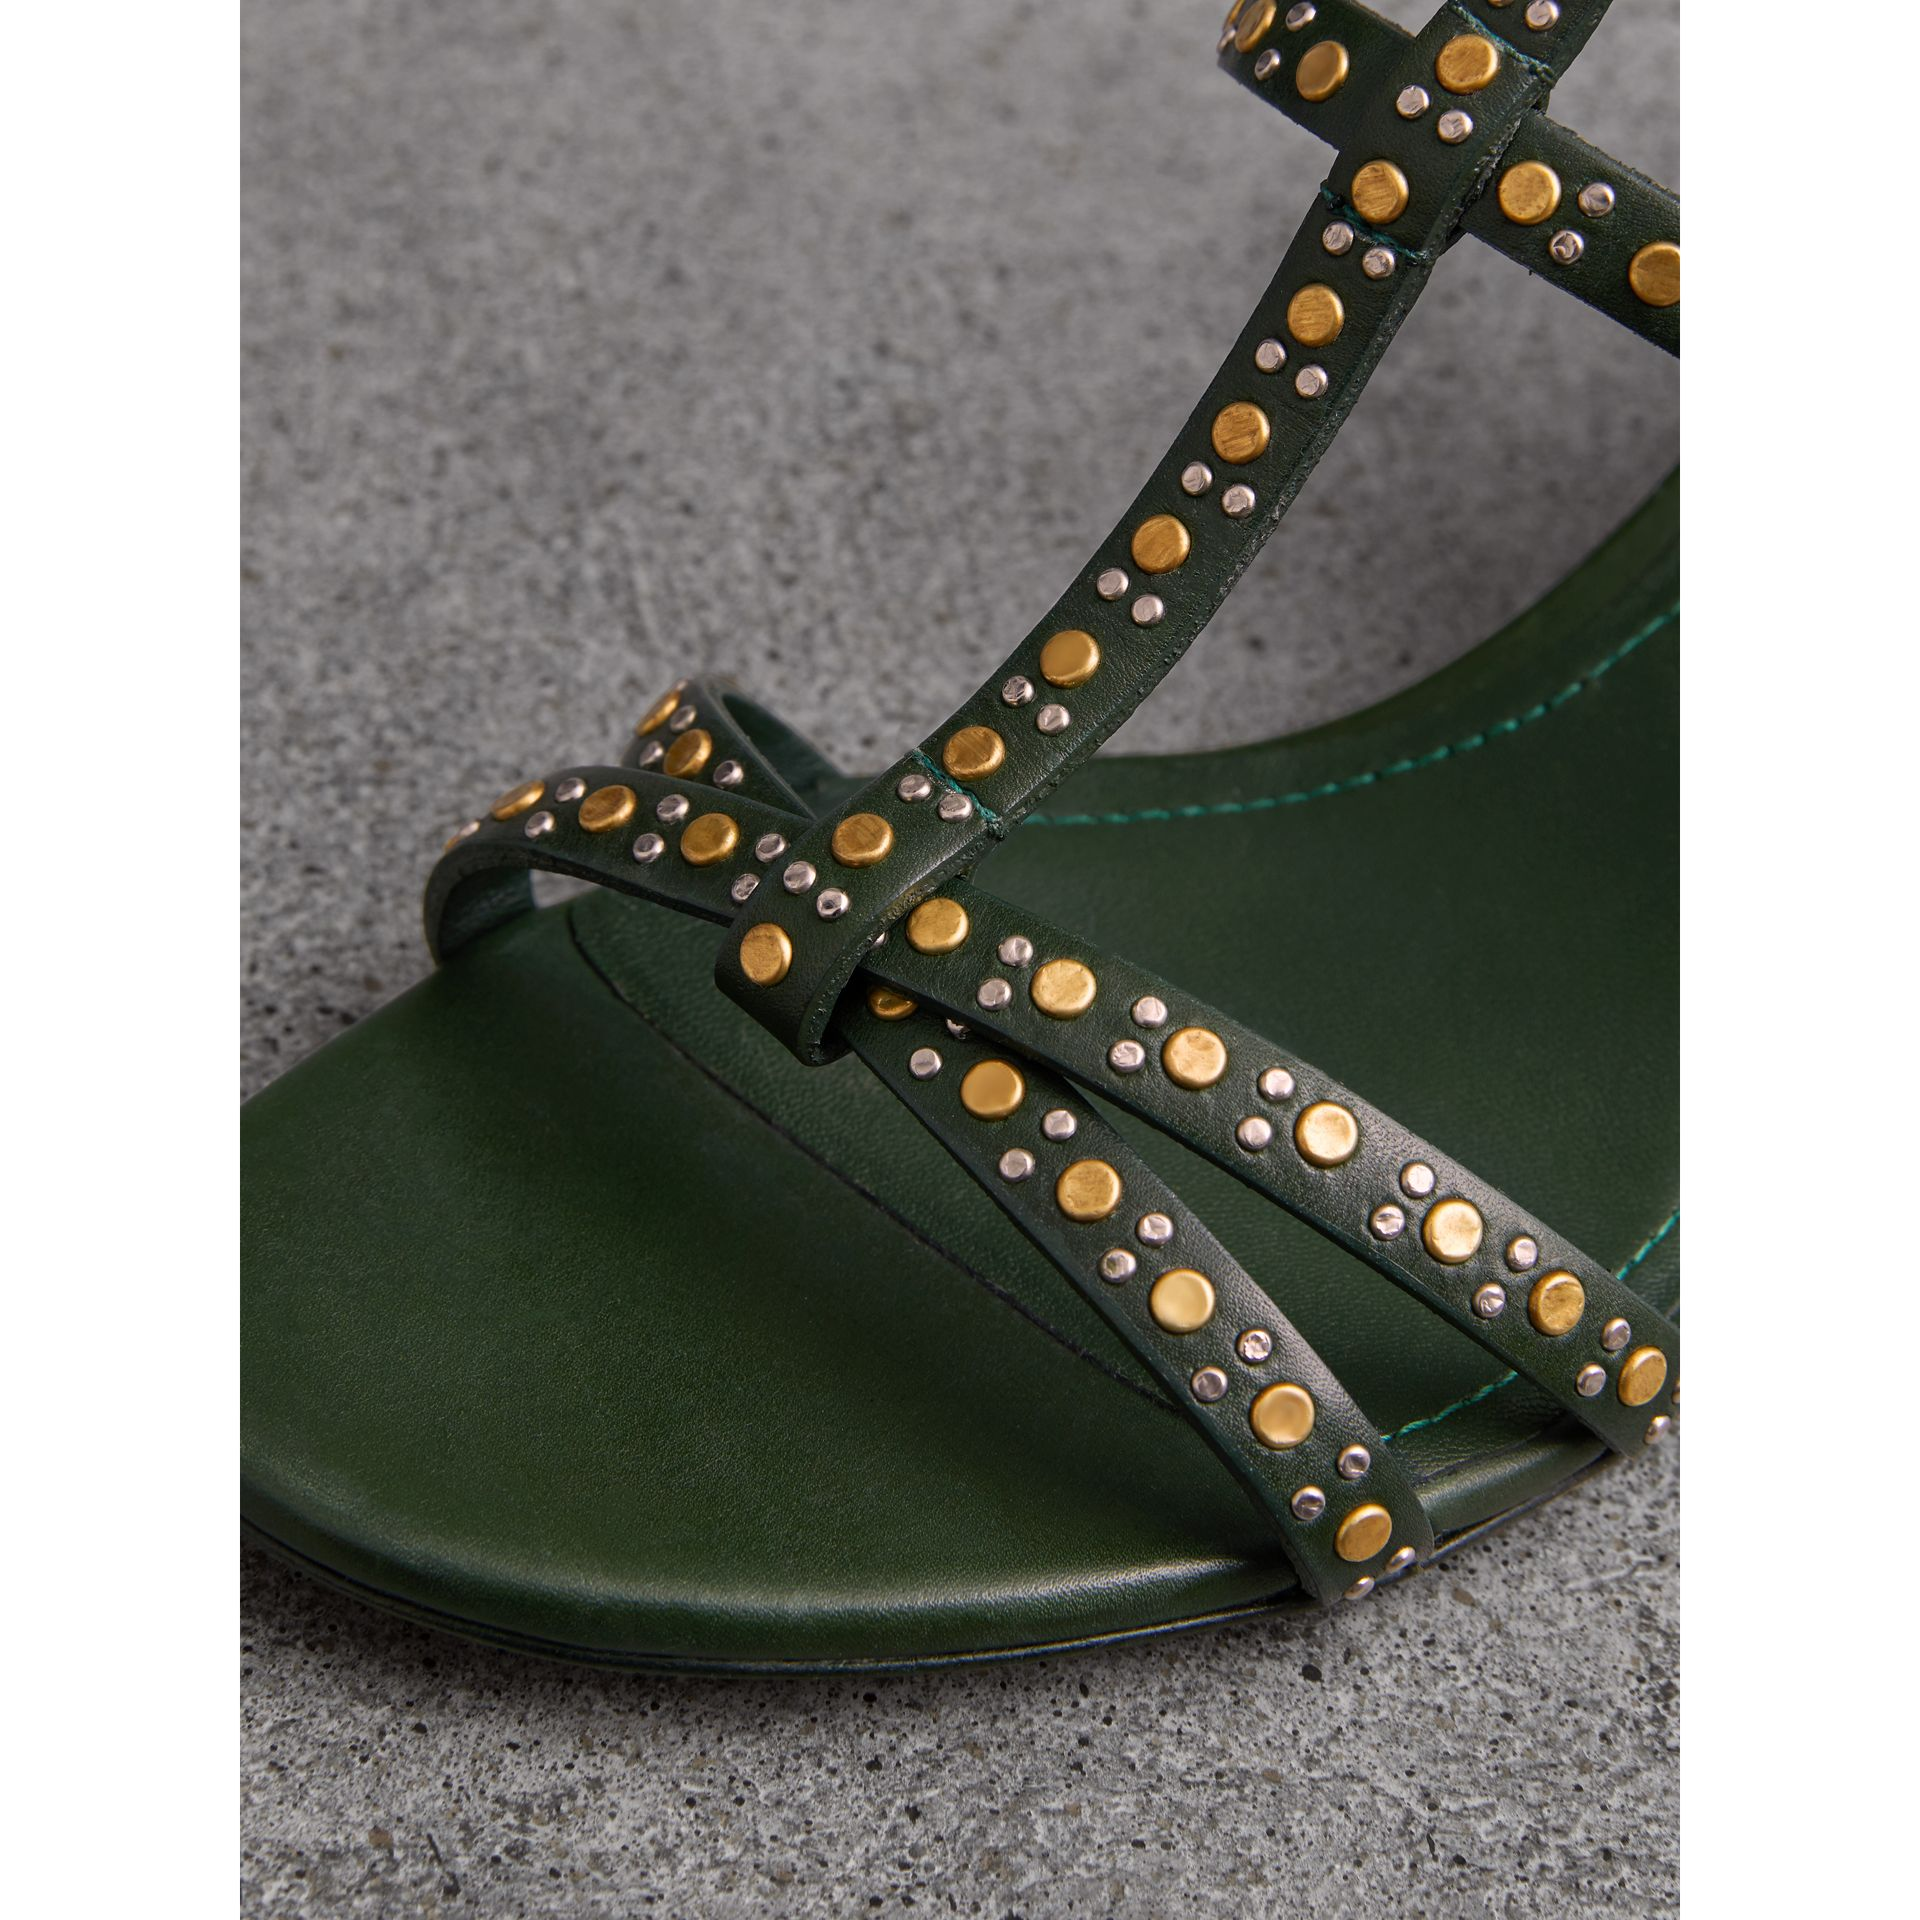 Riveted Leather Cone-heel Sandals in Dark Green - Women | Burberry - gallery image 1